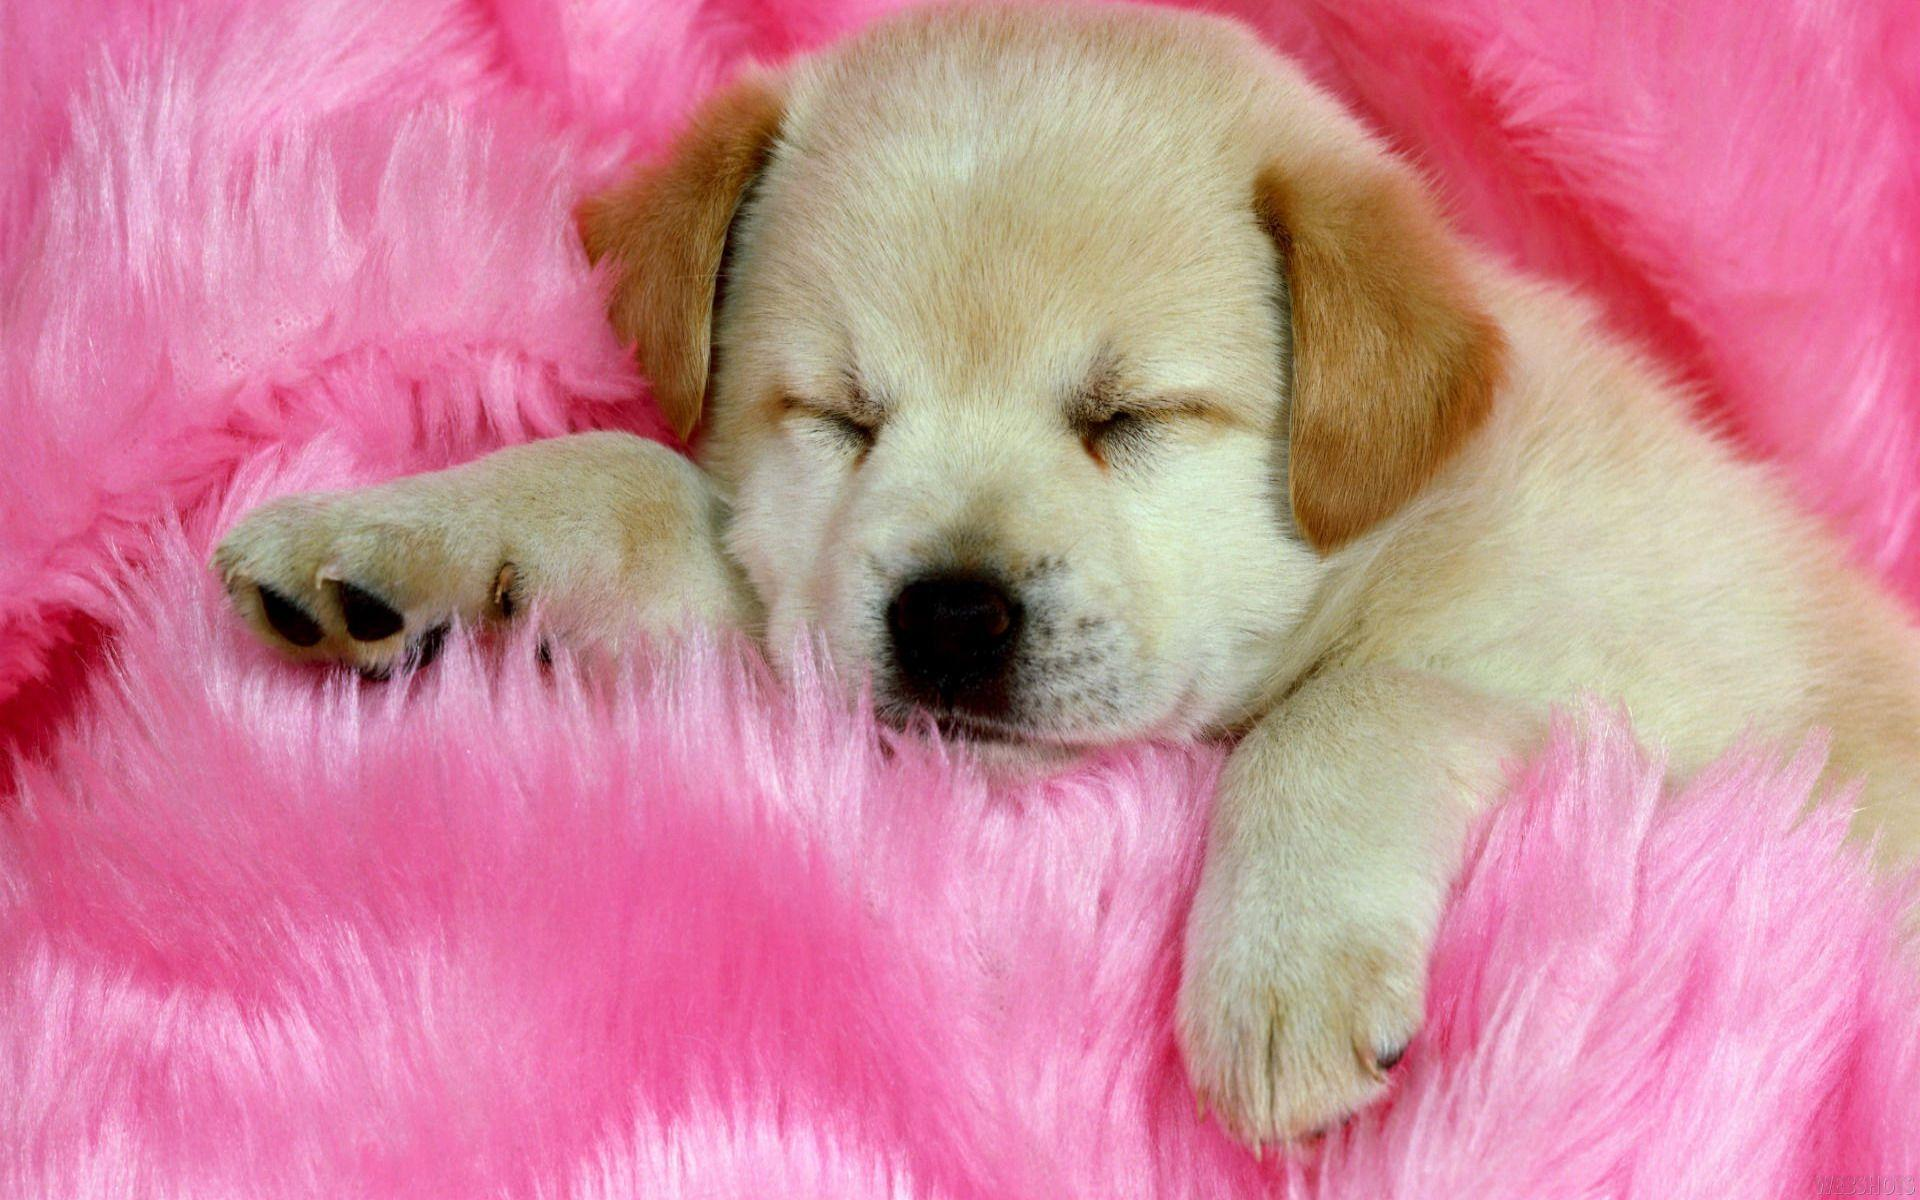 <b>Wallpapers</b> Of <b>Cute Dogs</b> - <b>wallpaper</b> hd